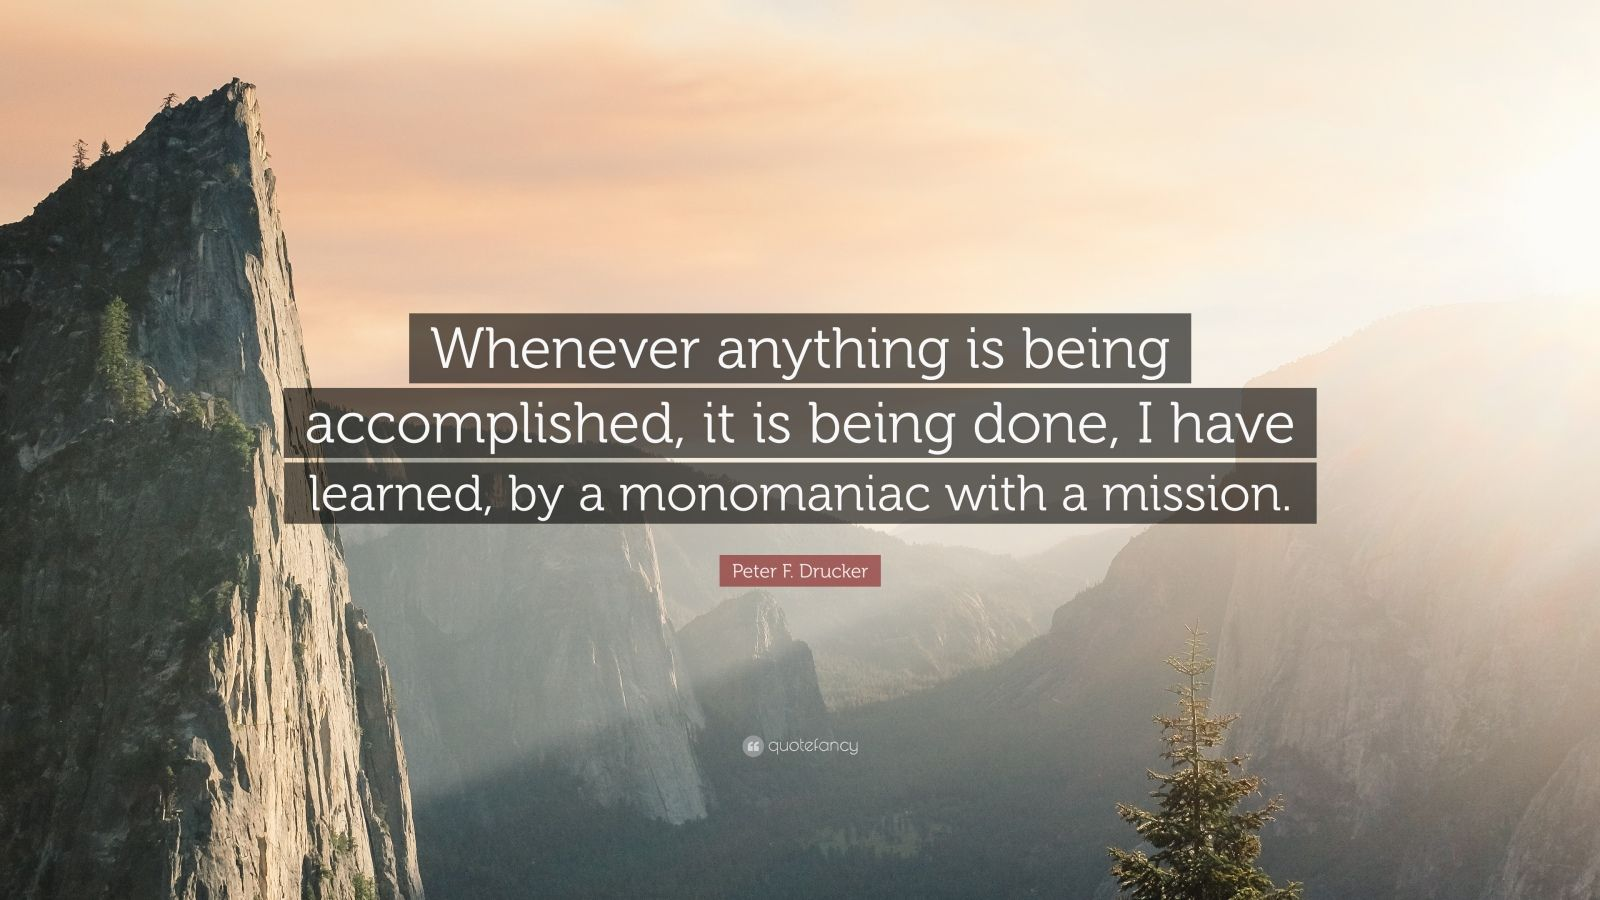 """Peter F. Drucker Quote: """"Whenever anything is being accomplished, it is being done, I have learned, by a monomaniac with a mission."""""""